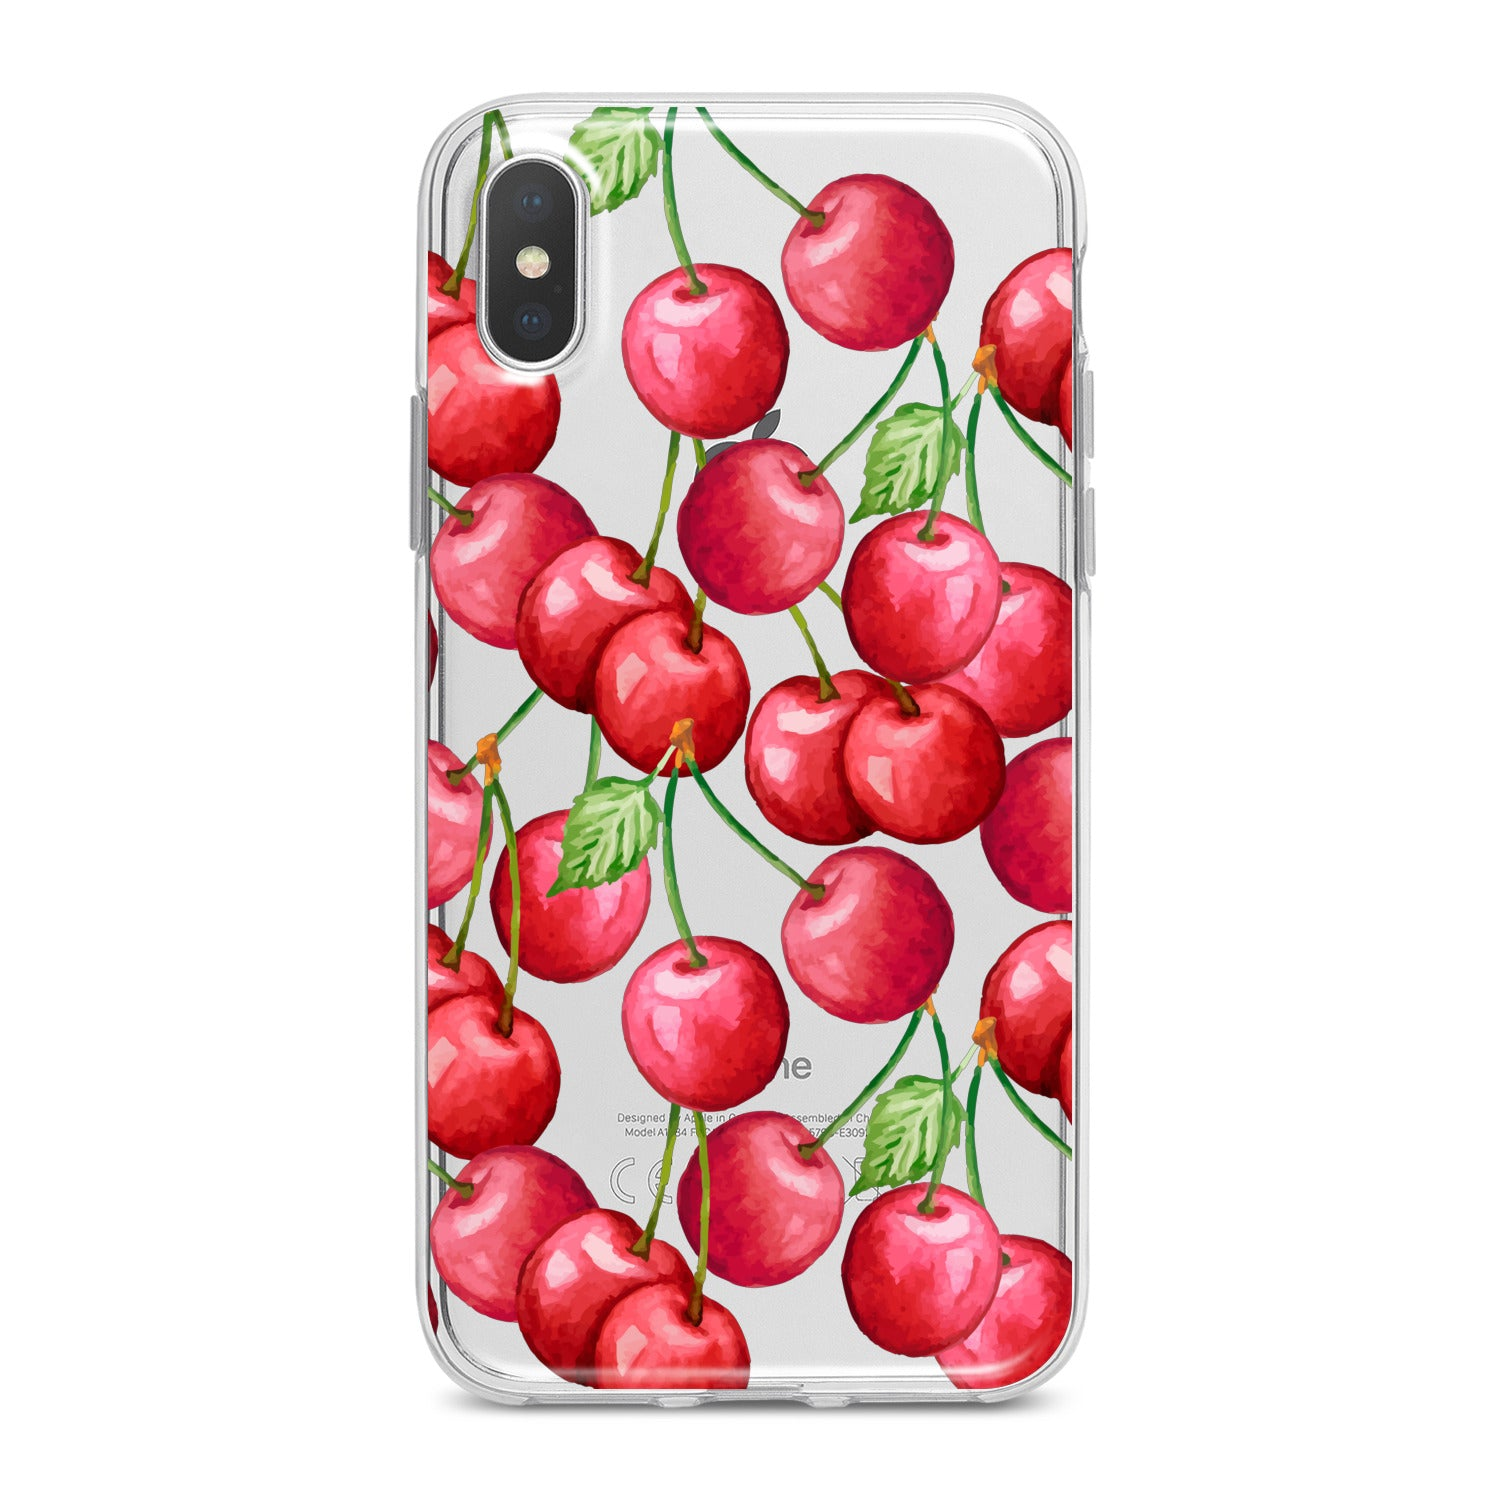 Lex Altern Watercolor Cherries Phone Case for your iPhone & Android phone.